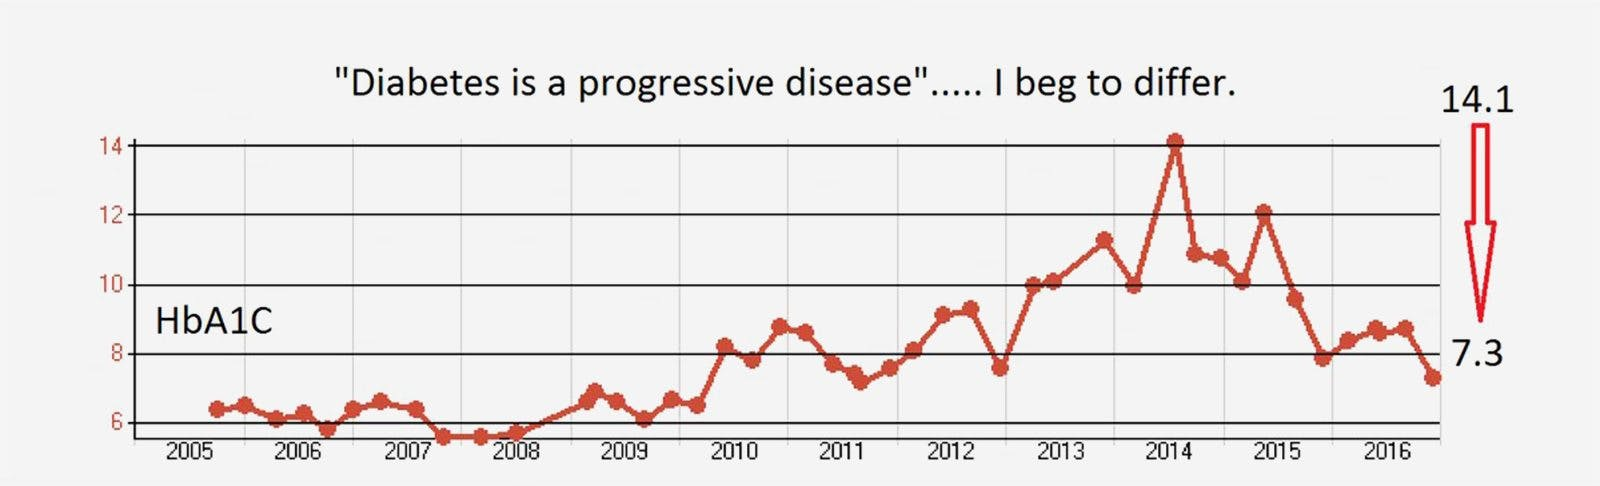 Is Type 2 Diabetes a Chronic & Progressive Disease? Once Again, Clearly Not